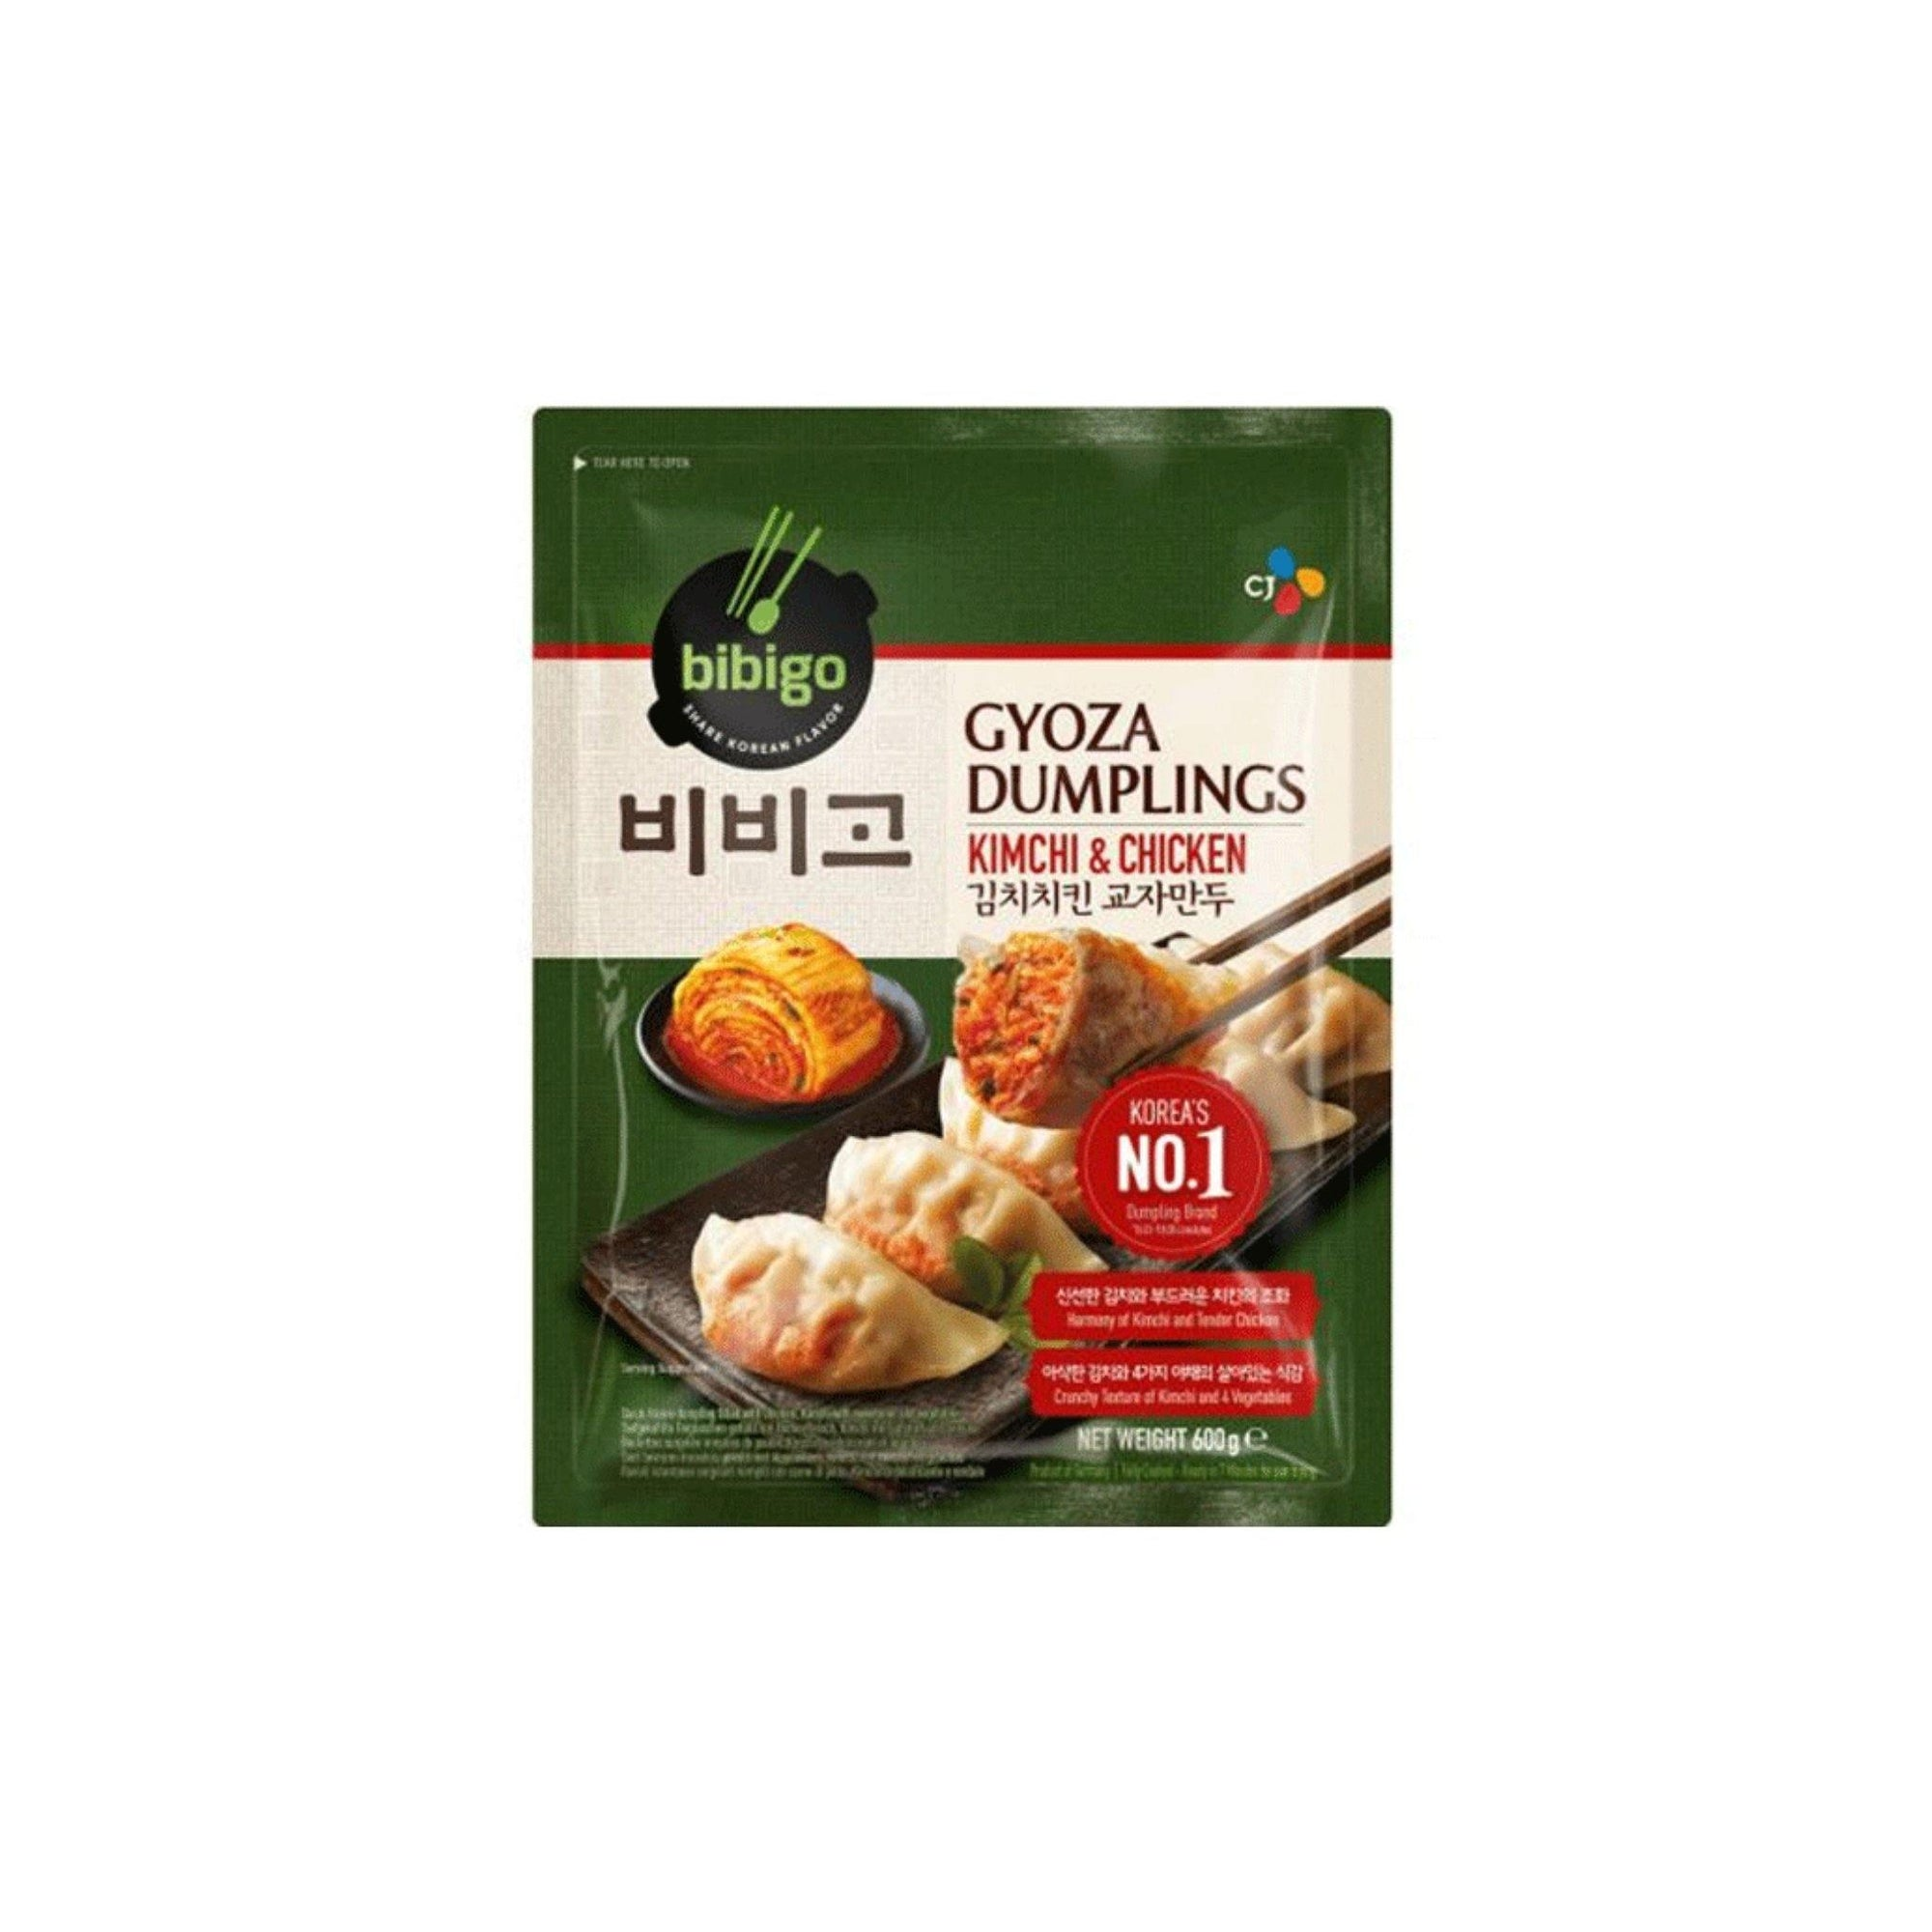 Bibigo Kimchi and Chicken Gyoza Dumpling 600G - Asian Harvest